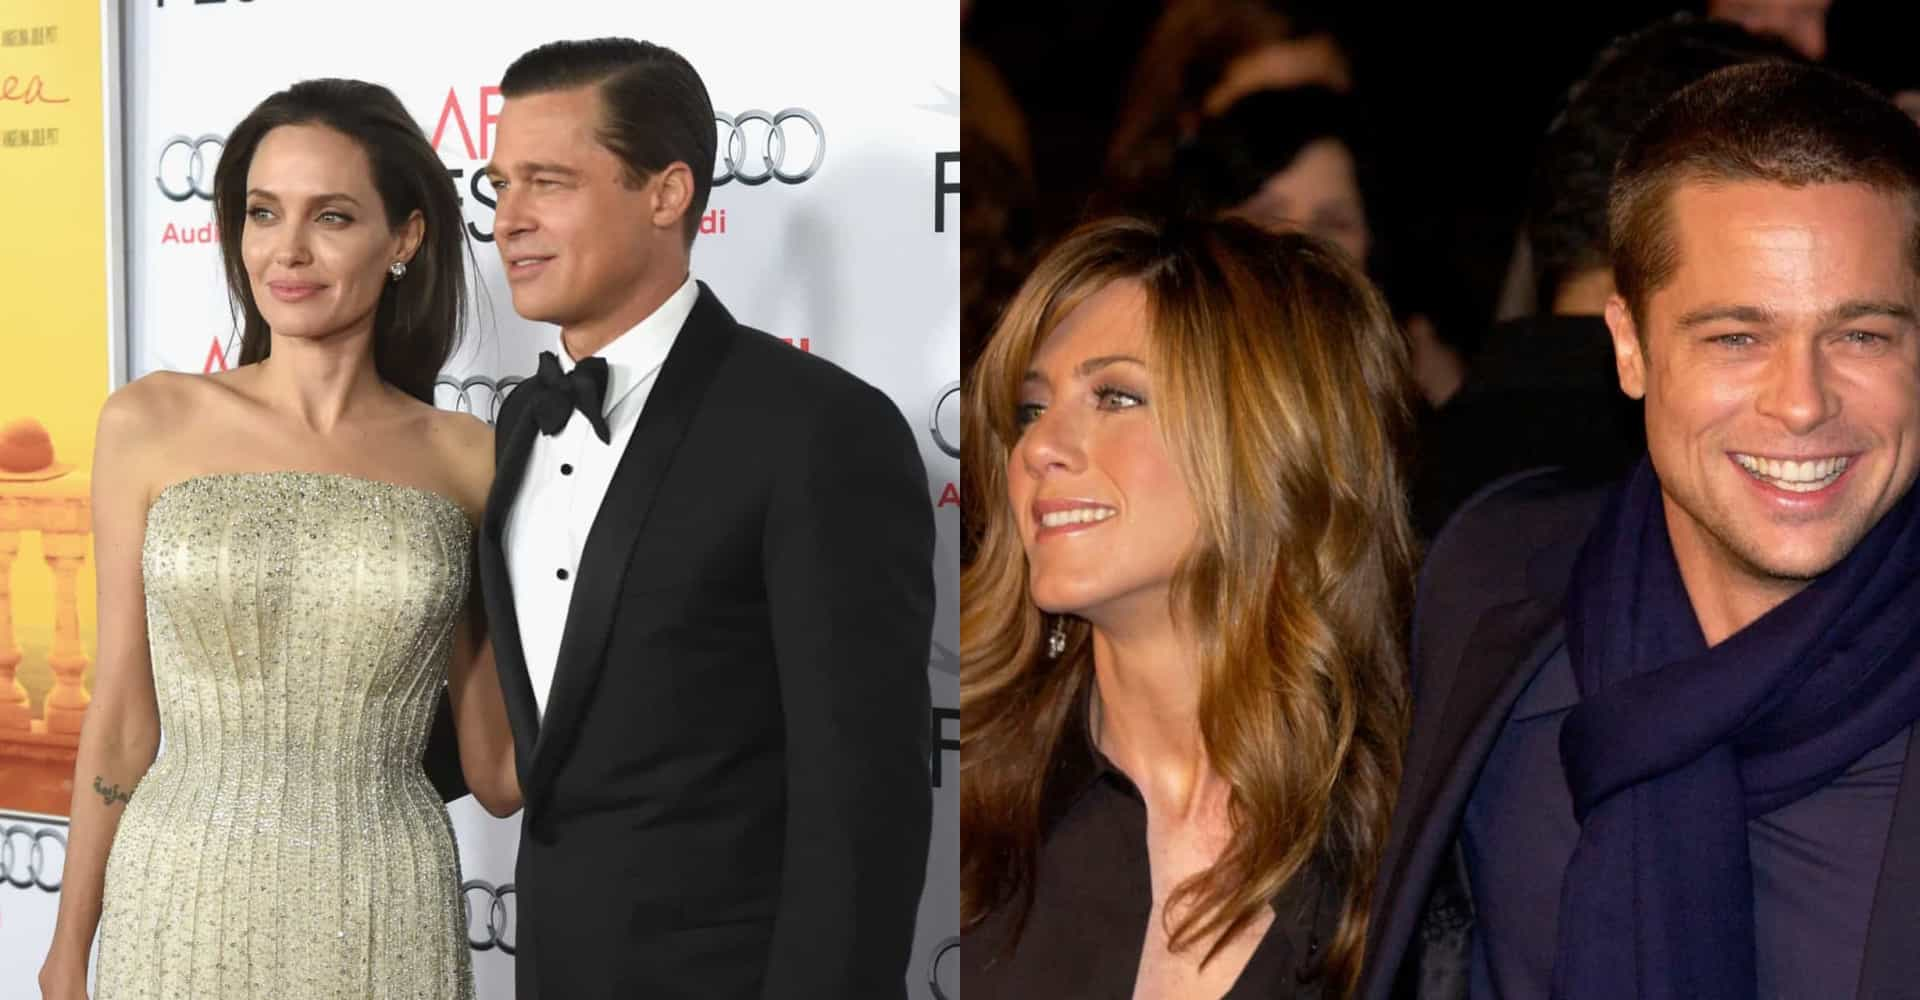 Hollywood's most complicated celebrity love triangles